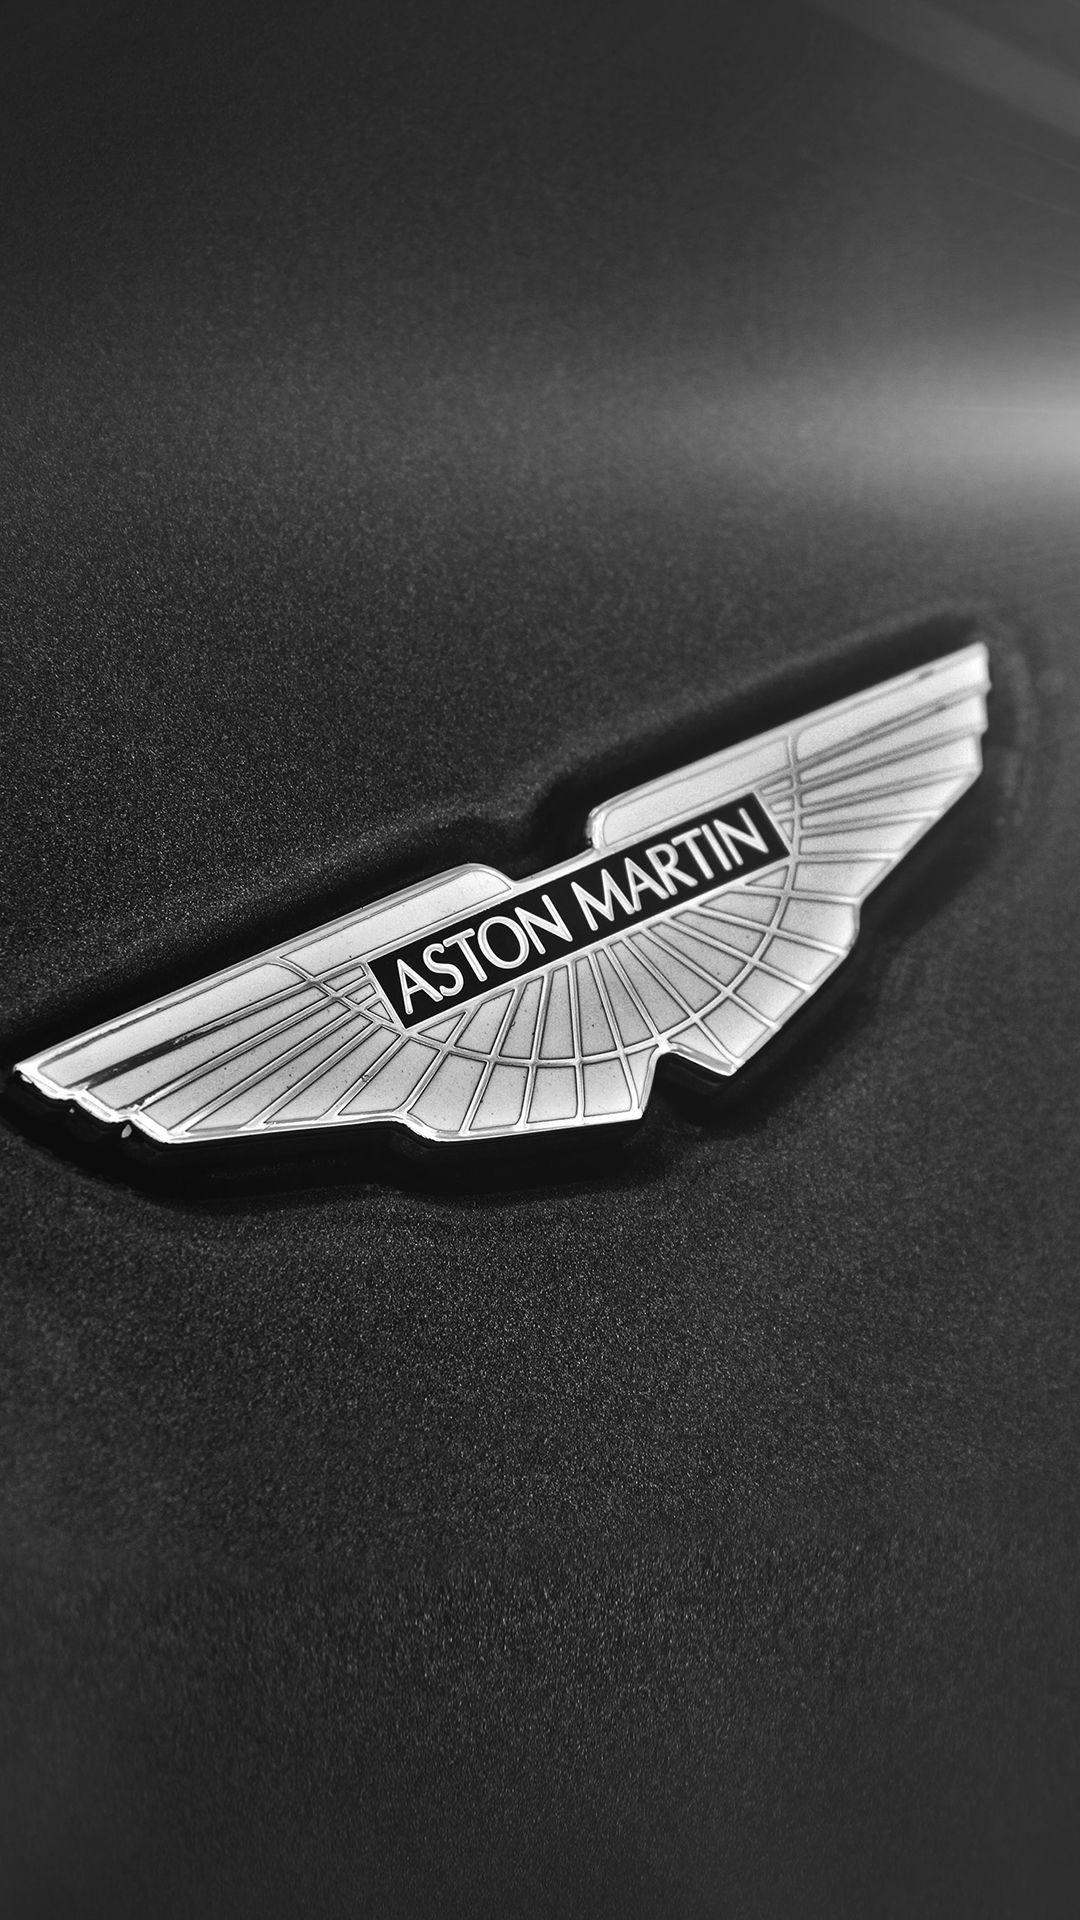 Simple Aston Martin Logo Dark Background iPhone 6 wallpaper 1080x1920